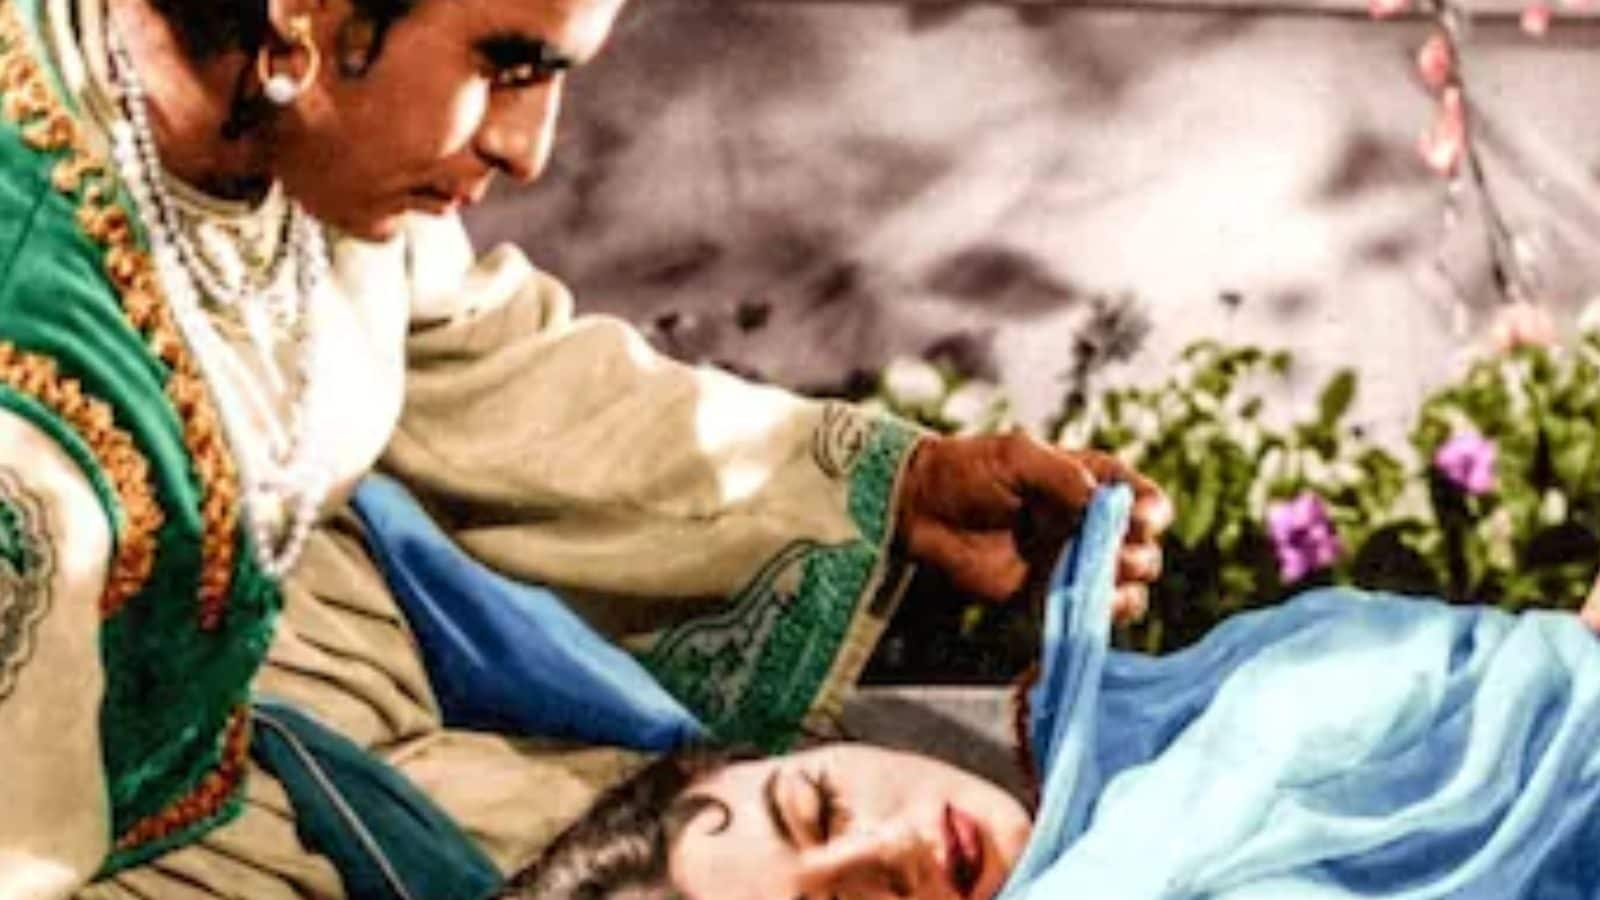 Dilip Kumar, Madhubala Were Not Even 'Greeting Other' While Shooting Iconic Romantic Scene